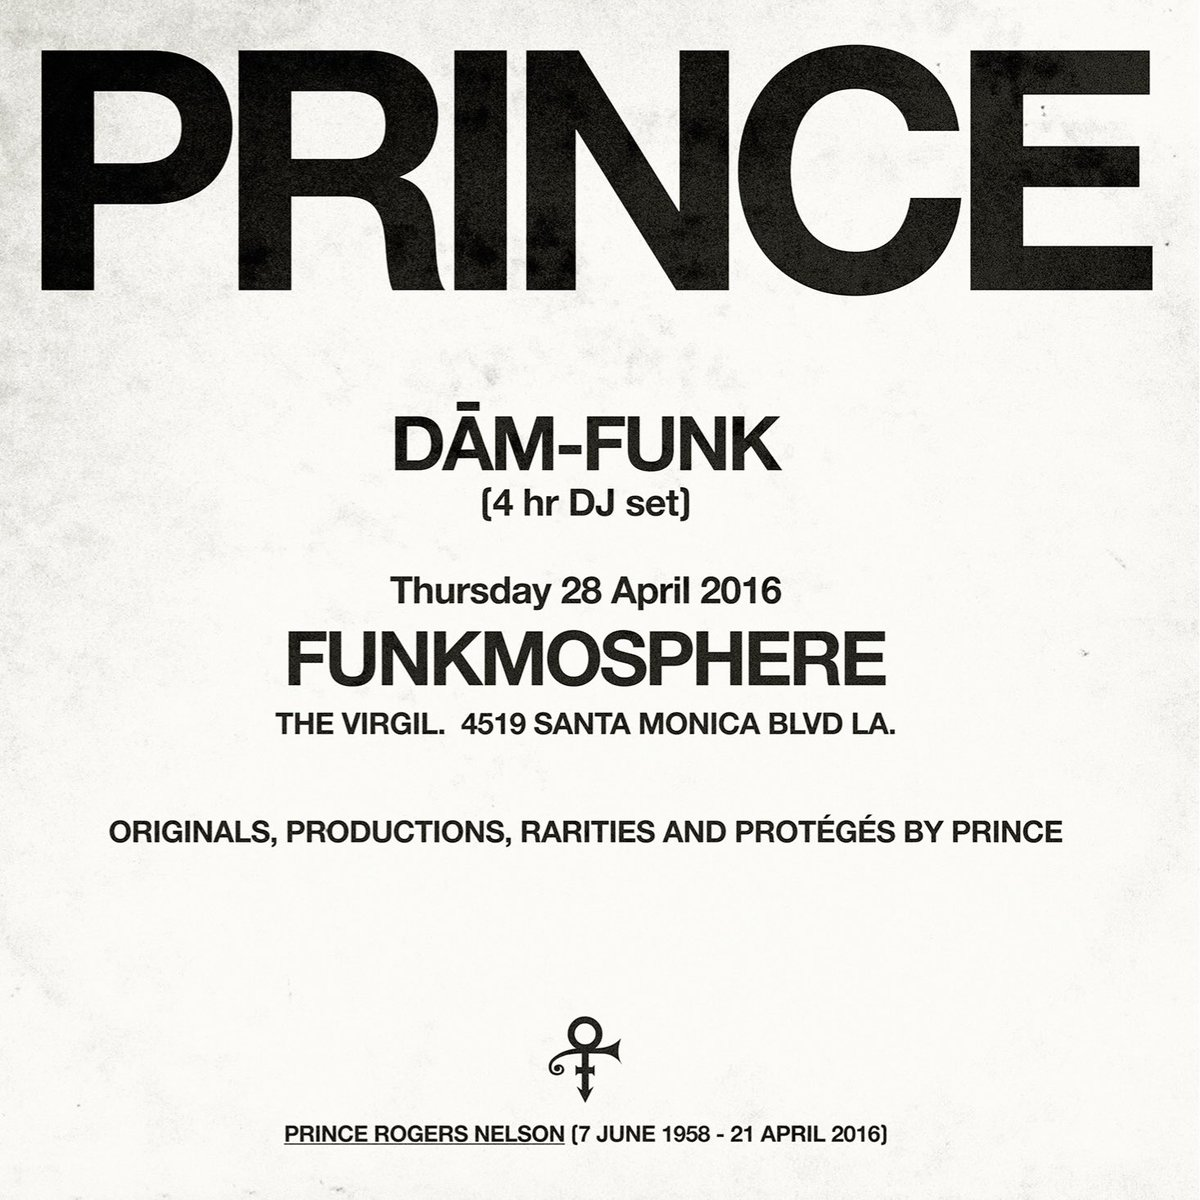 This Thurs: @DaMFunK does it 4 @Prince.  1 nite only. • @Funkmosphere At @TheVirgil • L.A. $5. All goes 2 charity.